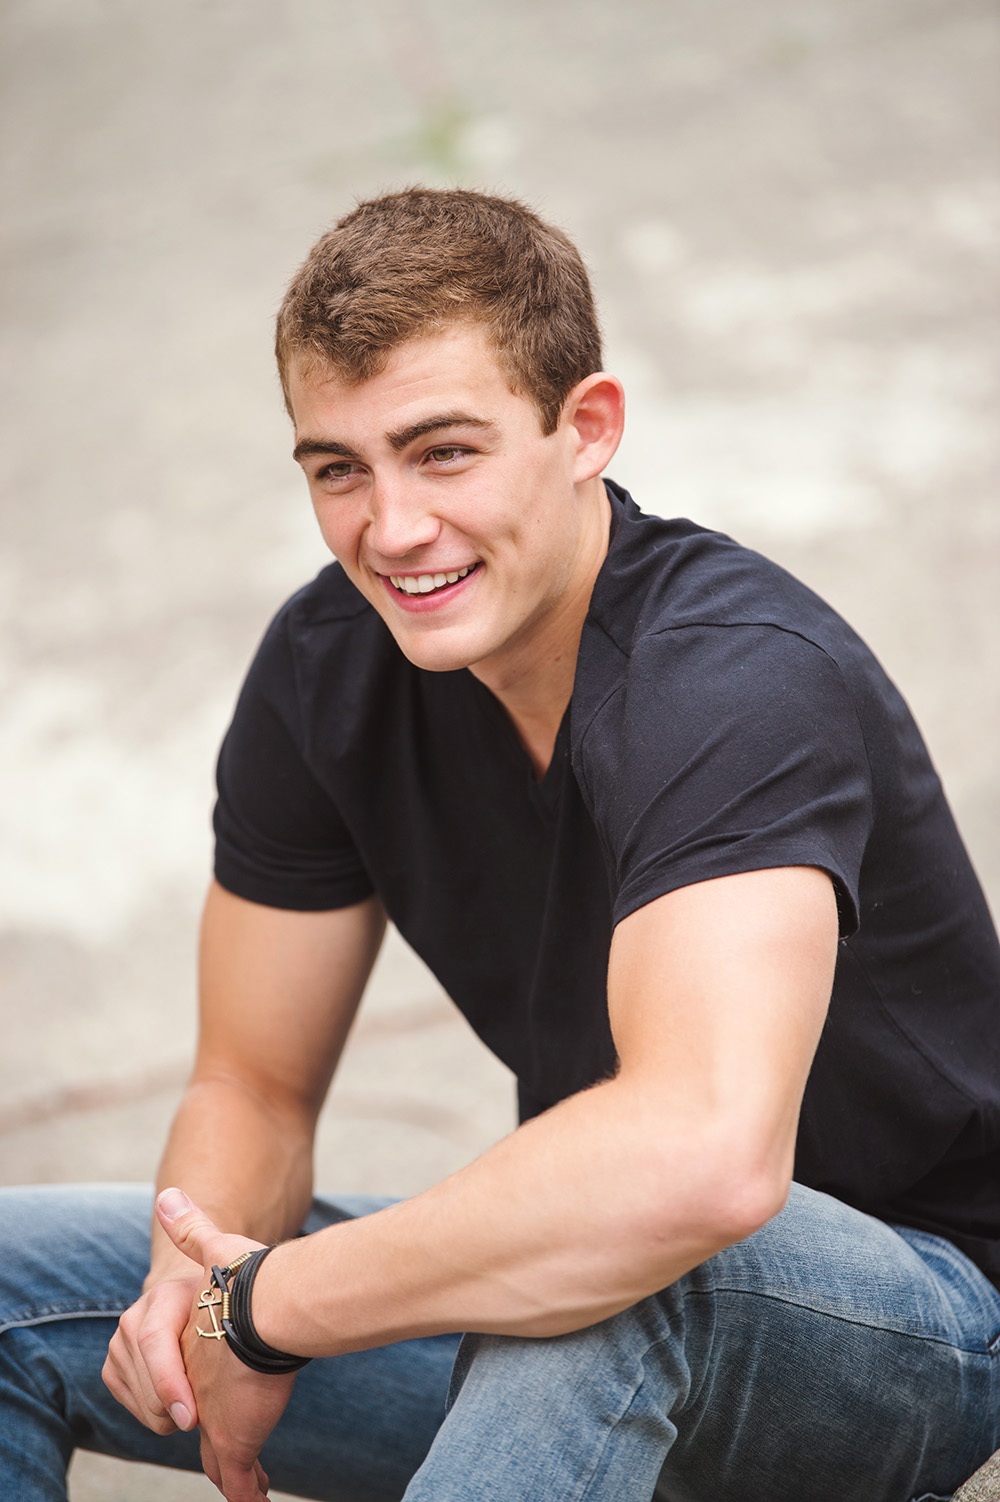 Great senior pictures of boy with dimples in black shirt_Studio B Portraits_Roorda.jpg